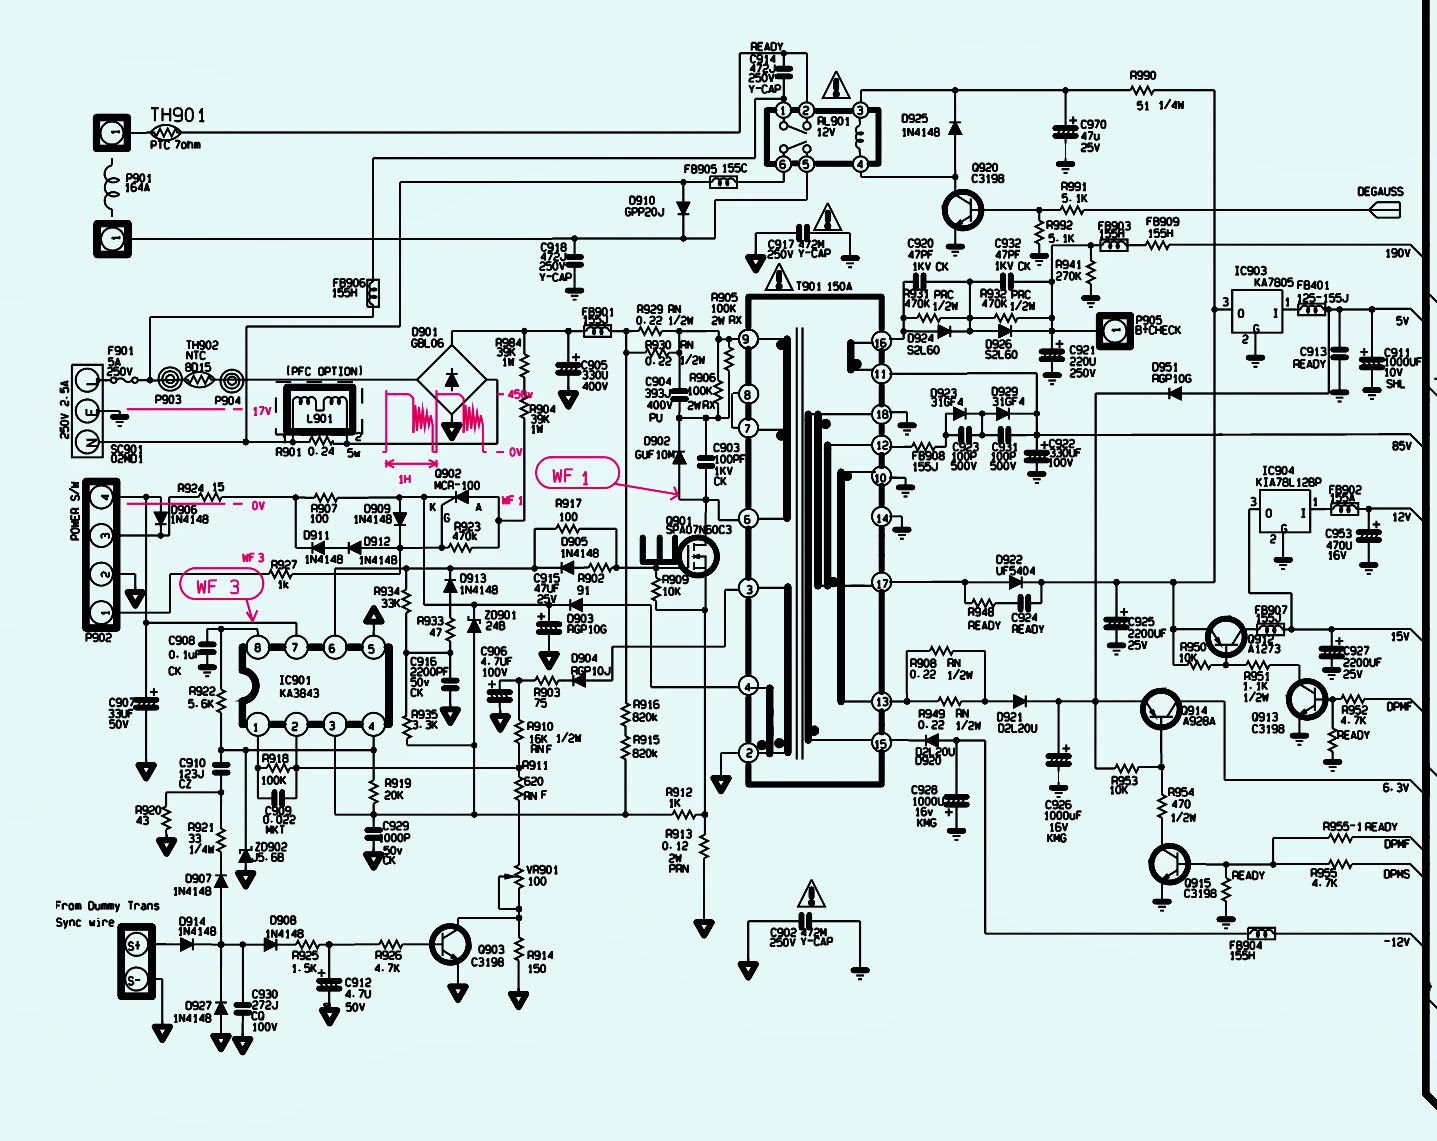 LG FLATRON  F900B  POWER SUPPLY [SMPS]  SCHEMATIC